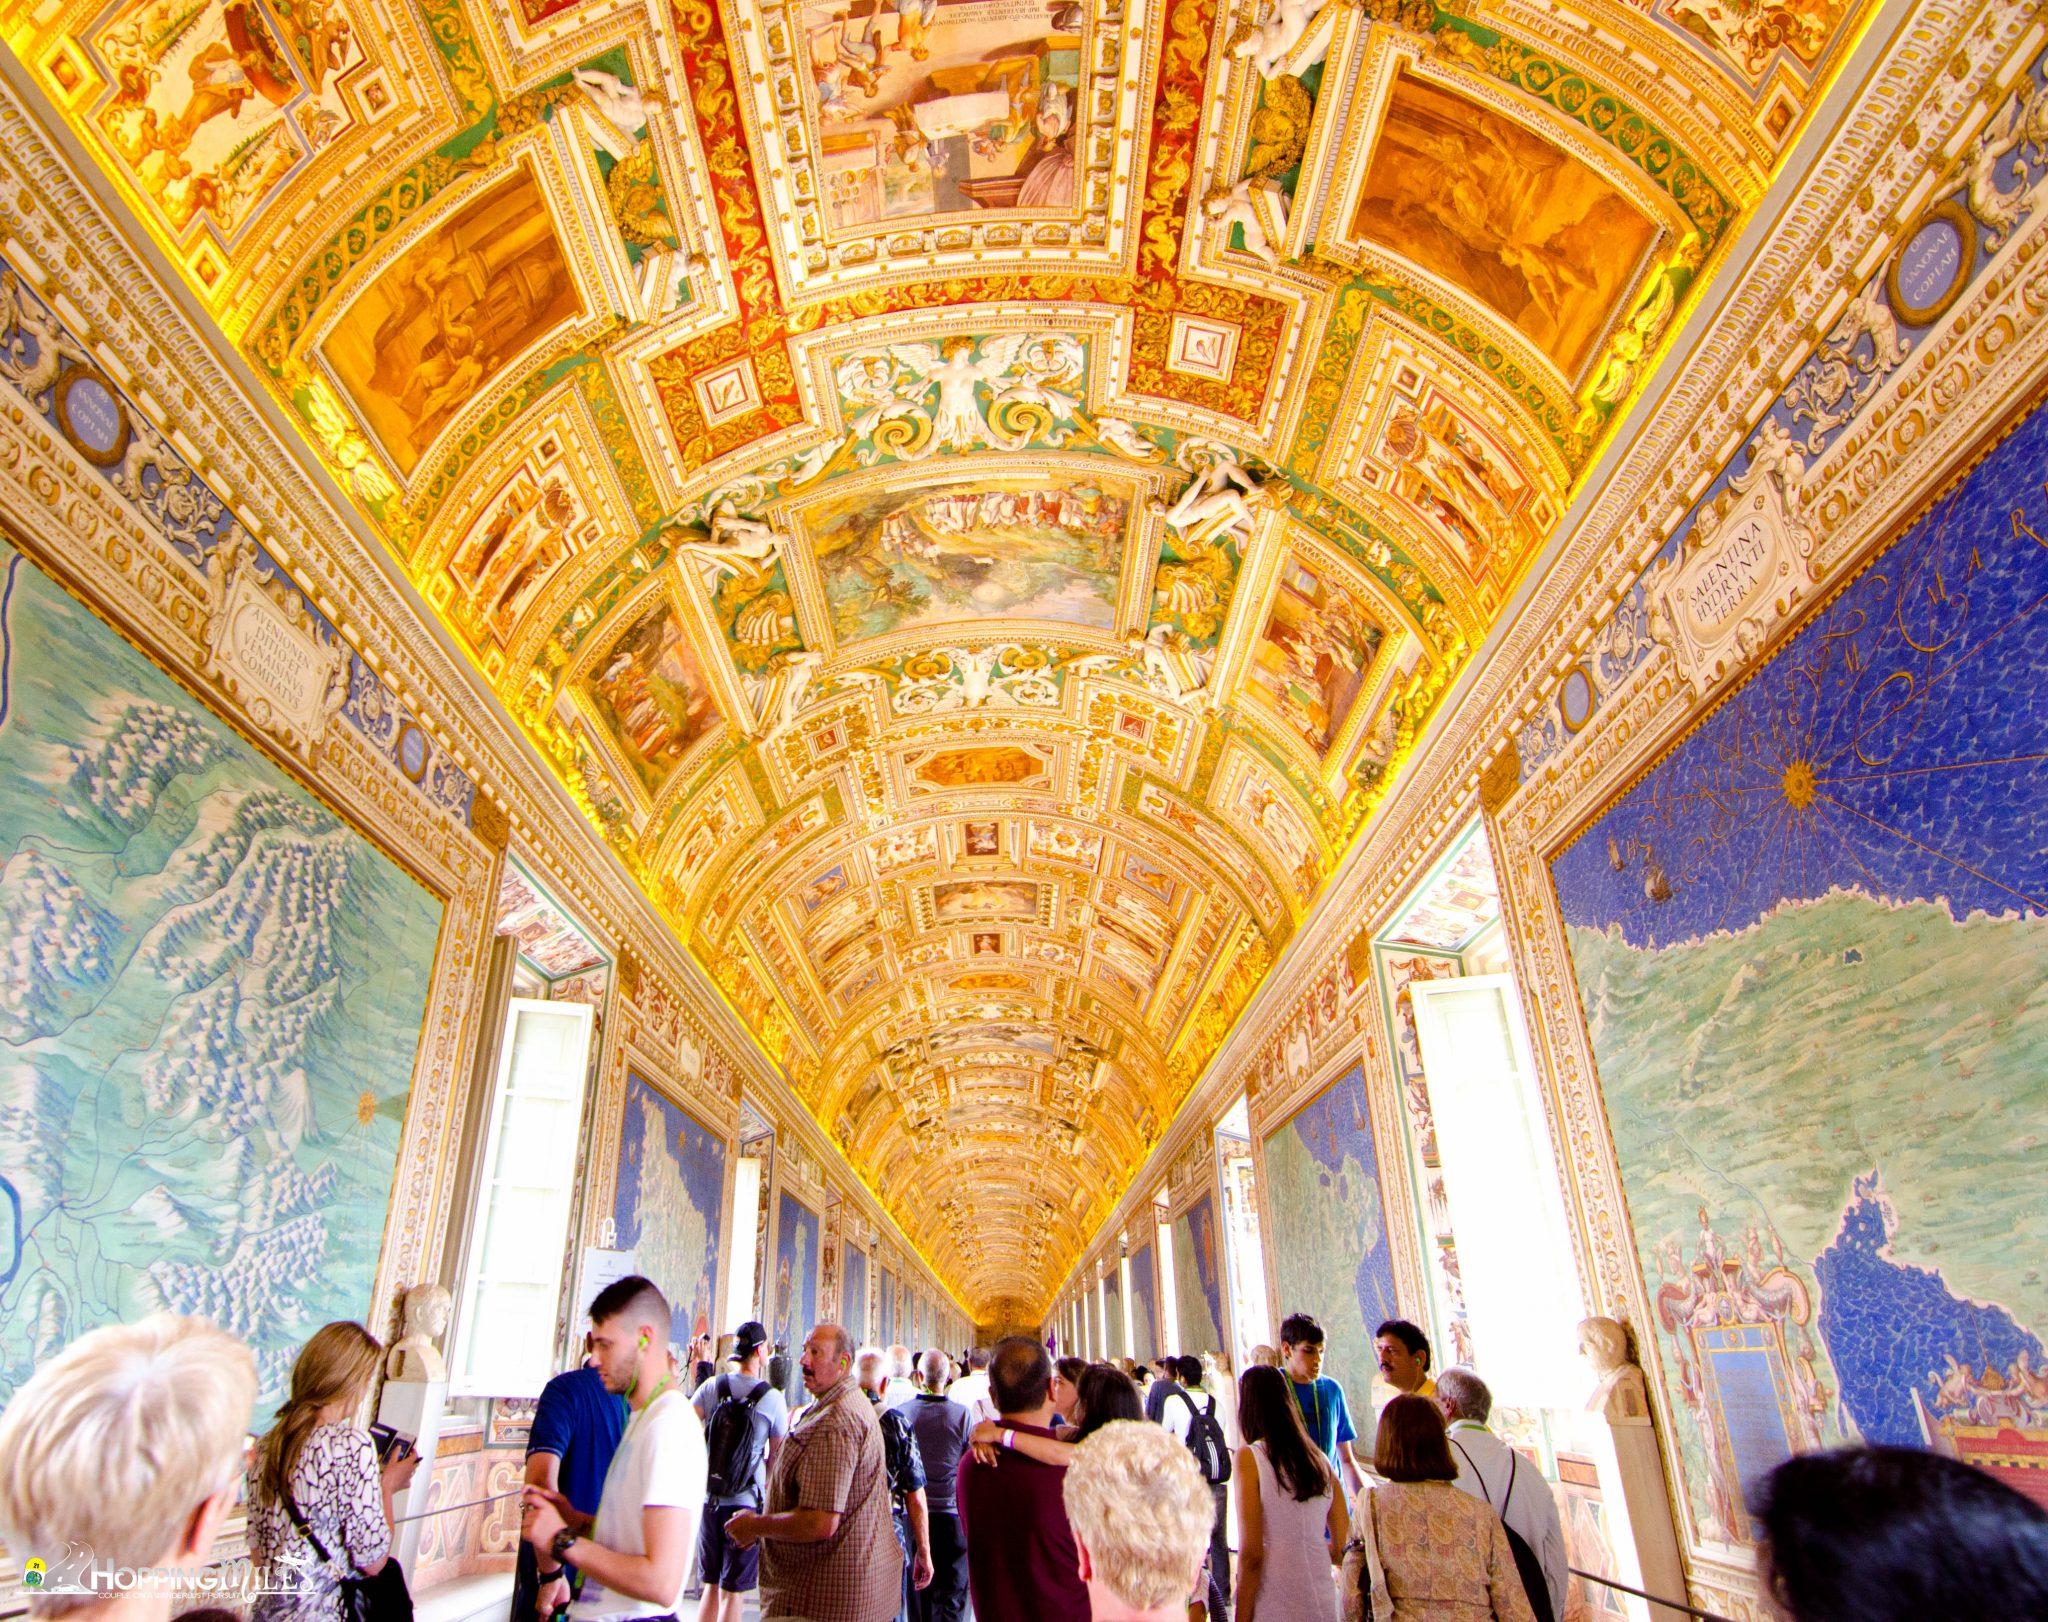 Vatican City - Explore World's smallest country in a day